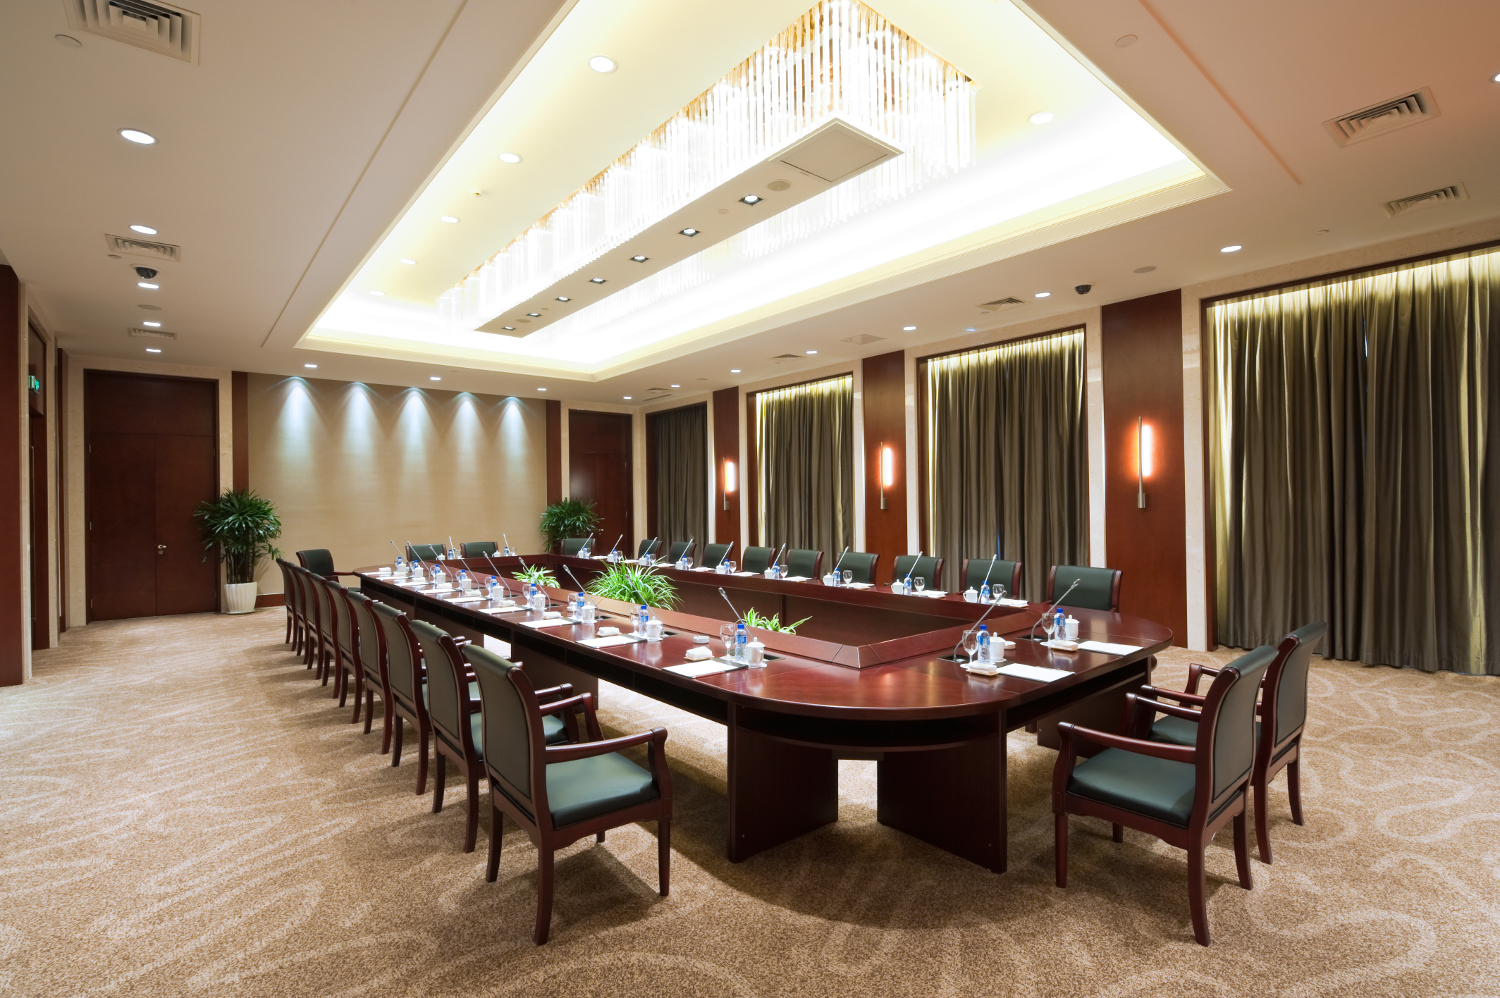 conference room in a hotel